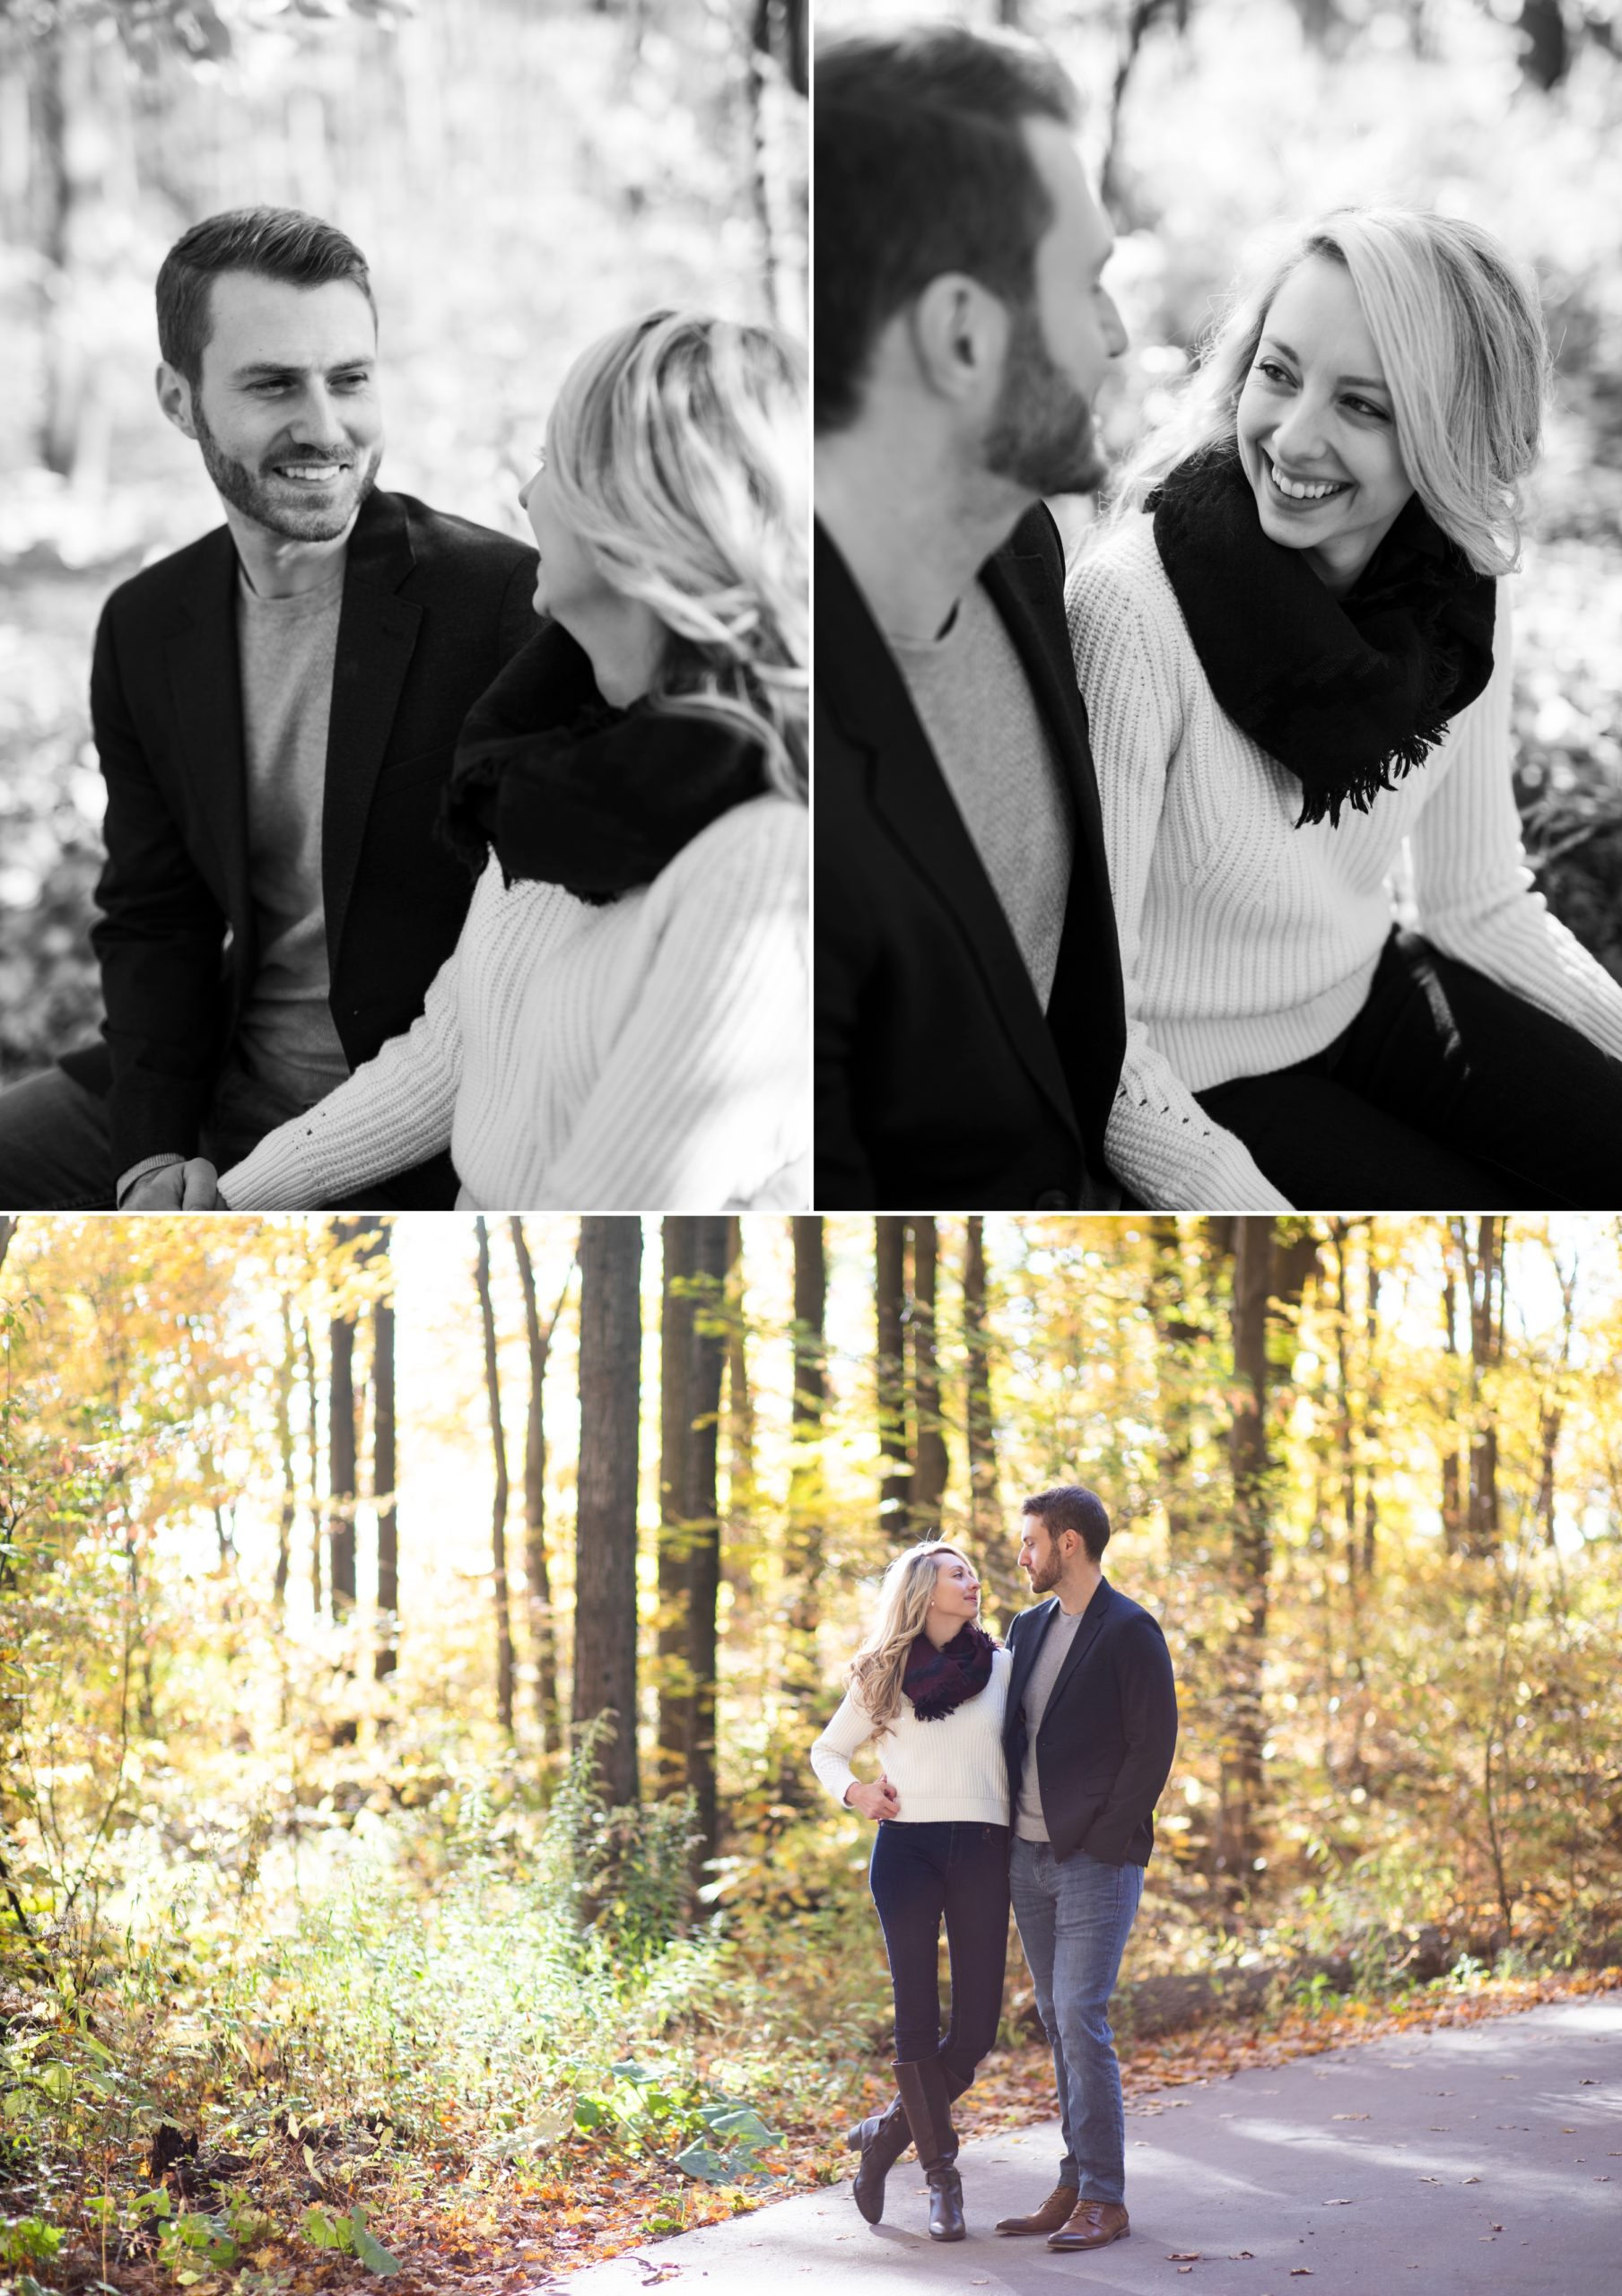 Black and White Portrait Rattlesnake Point Fall Autumn Engagement Milton Zsuzsi Pal Photography